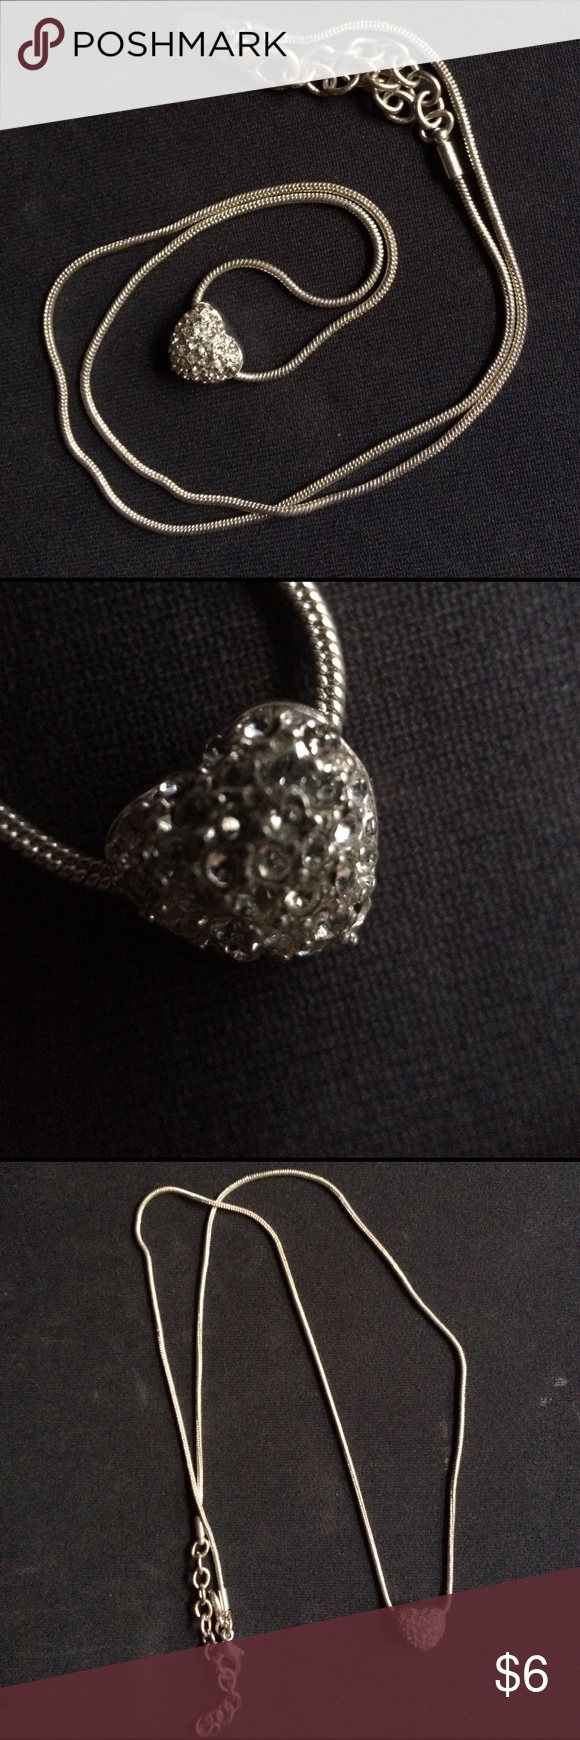 """Heart shaped faux diamond pendant silver necklace Vintage heart shaped pendant encrusted with faux diamonds on a thin silver chain, finished with a silver clasp. Adjustable on chain links. 9"""" when clasped at the last ring on the chain. I ship daily and am open to trades if you have one of my ISOs (listed in my closet). Will consider all offers! Vintage Jewelry Necklaces"""